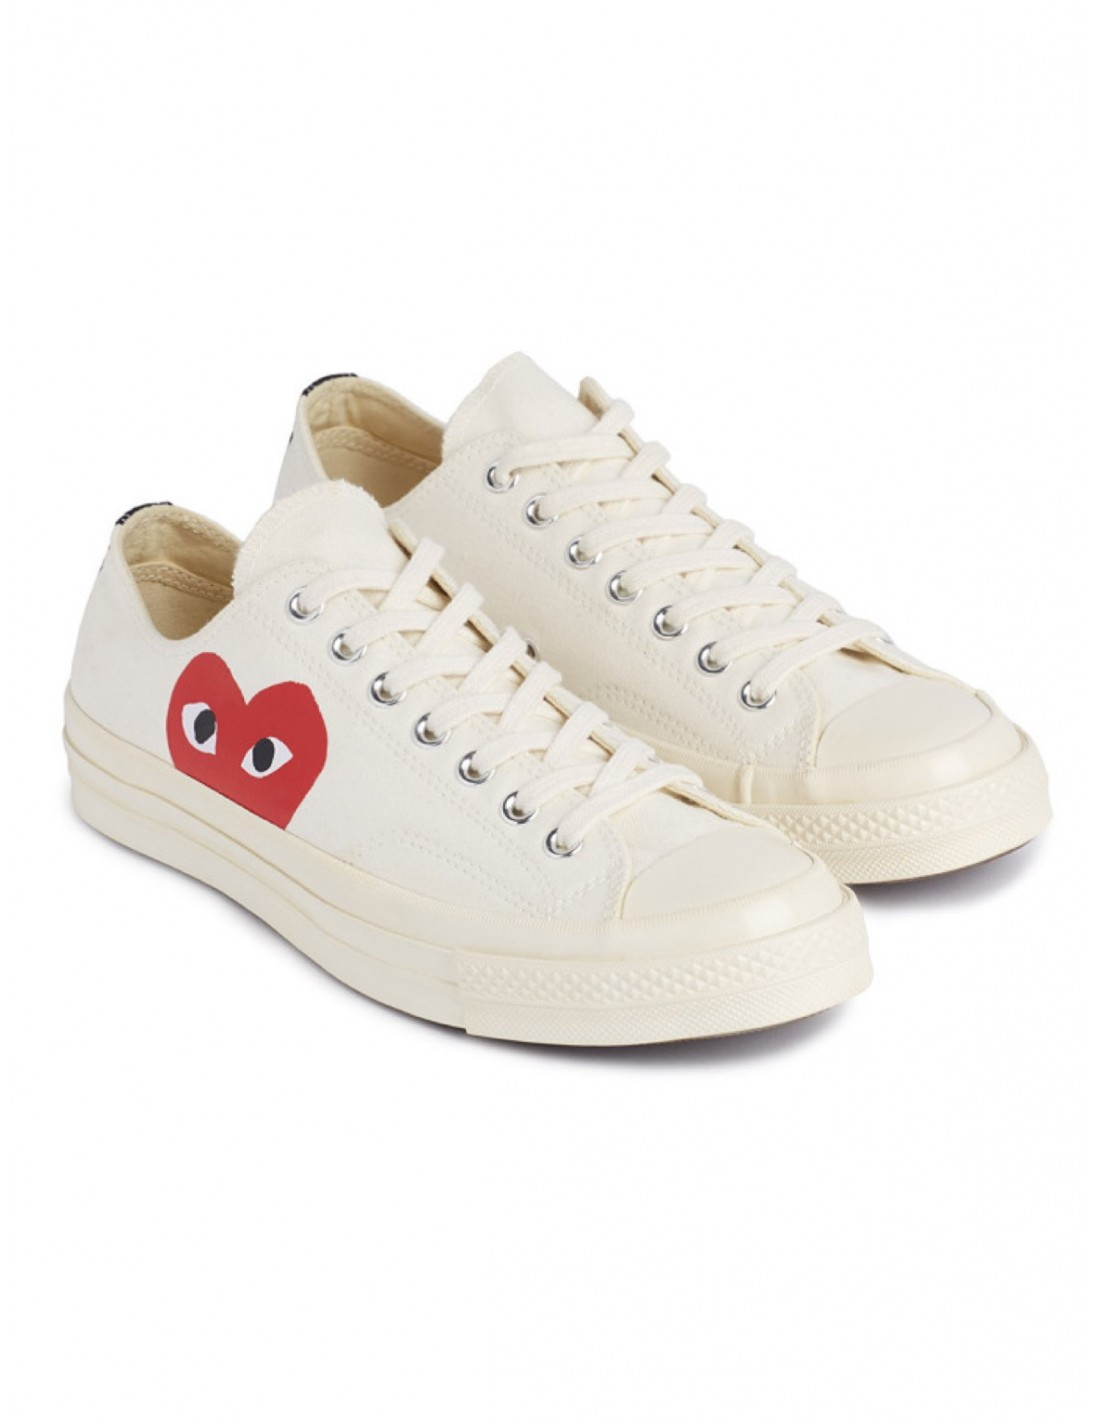 c0519a81d87aff ... Comme des Garcons play Converse low-top sneakers - White. New